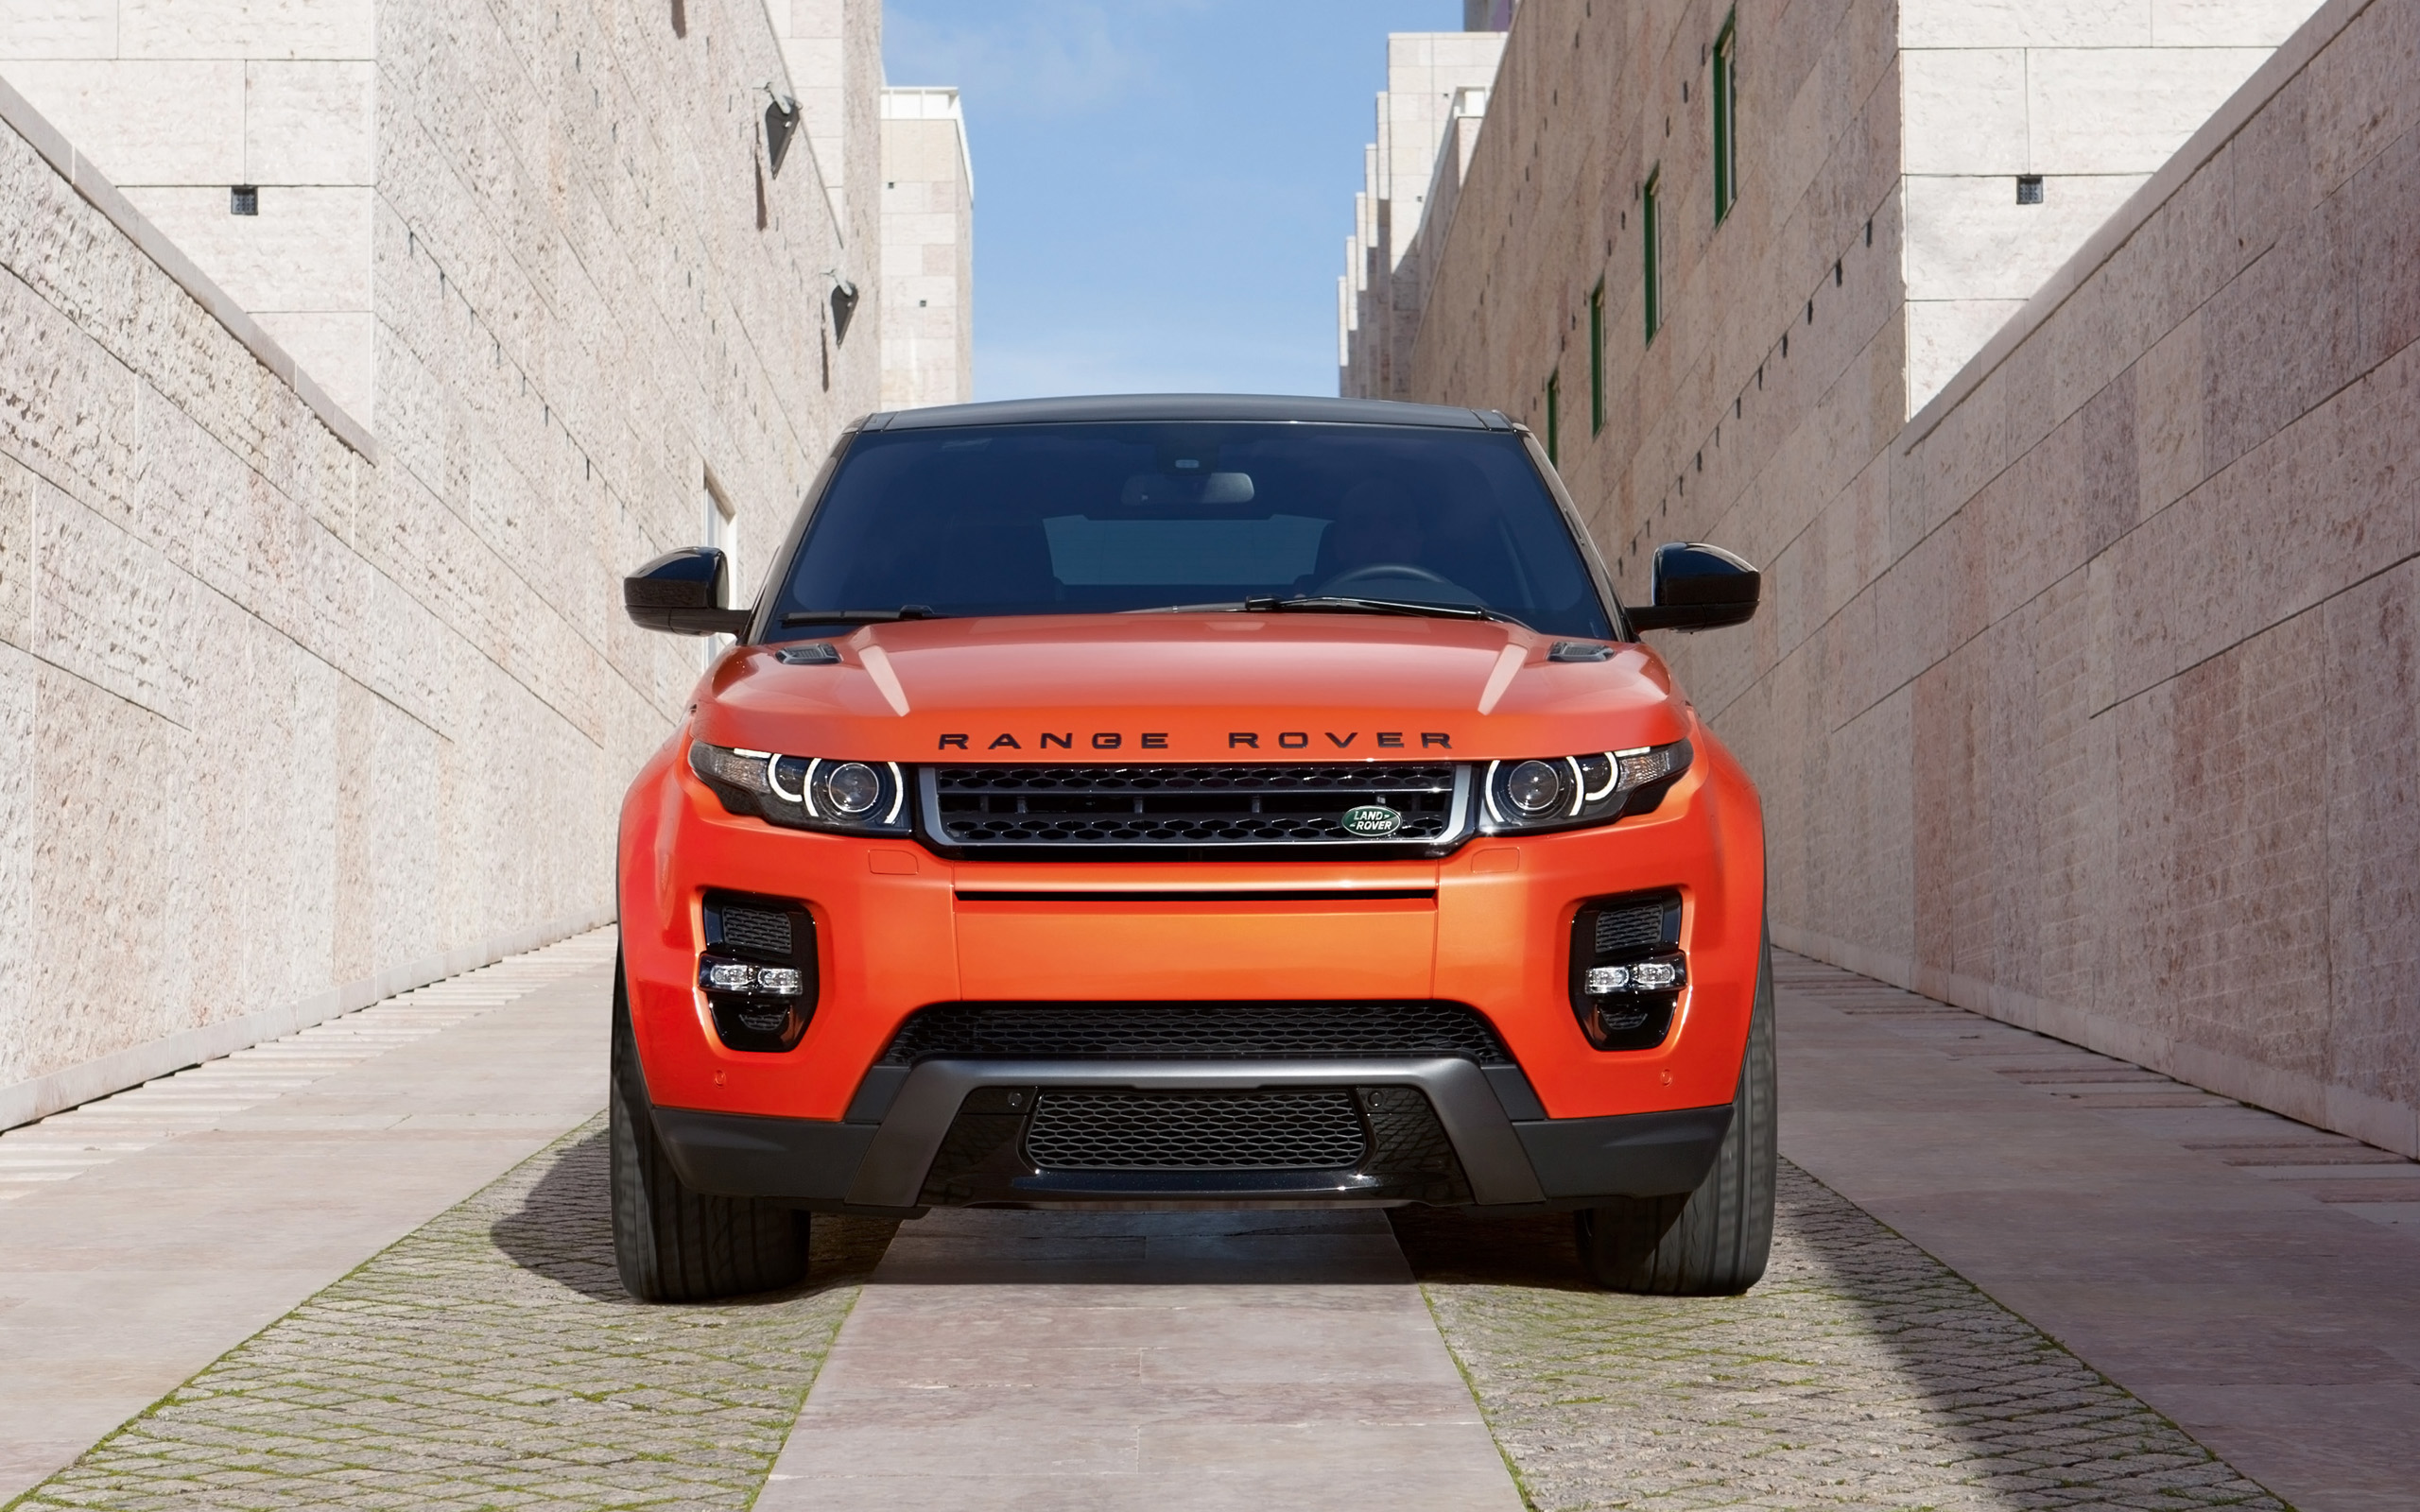 Range Rover Evoque Autobiography 2015 Wallpaper Hd Car Wallpapers